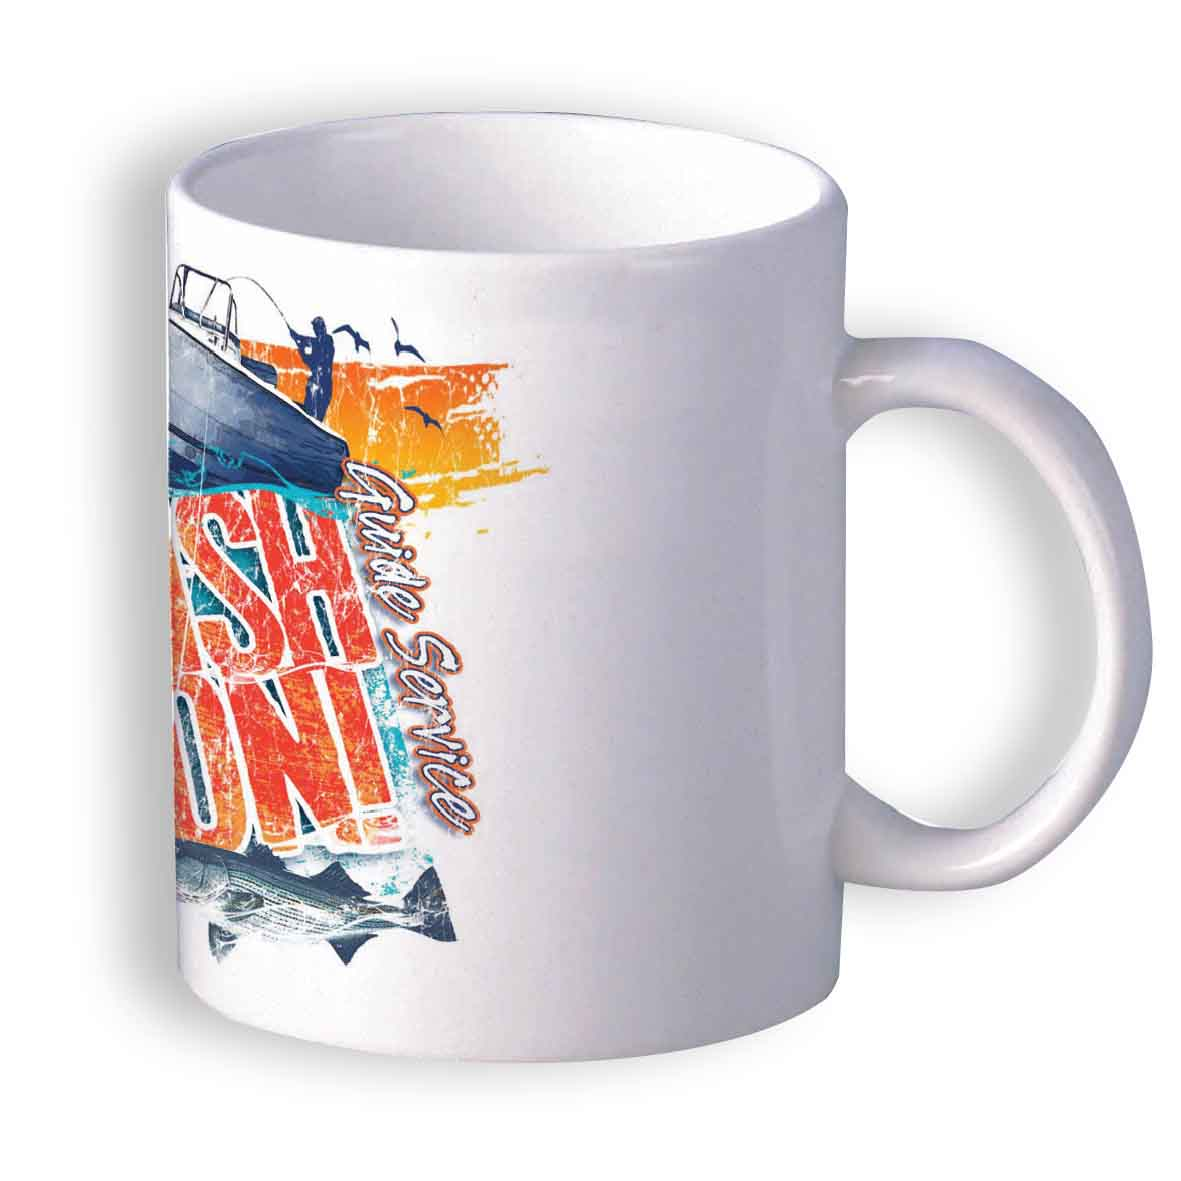 Sublimation mug 320 ml - White cr-032w subl